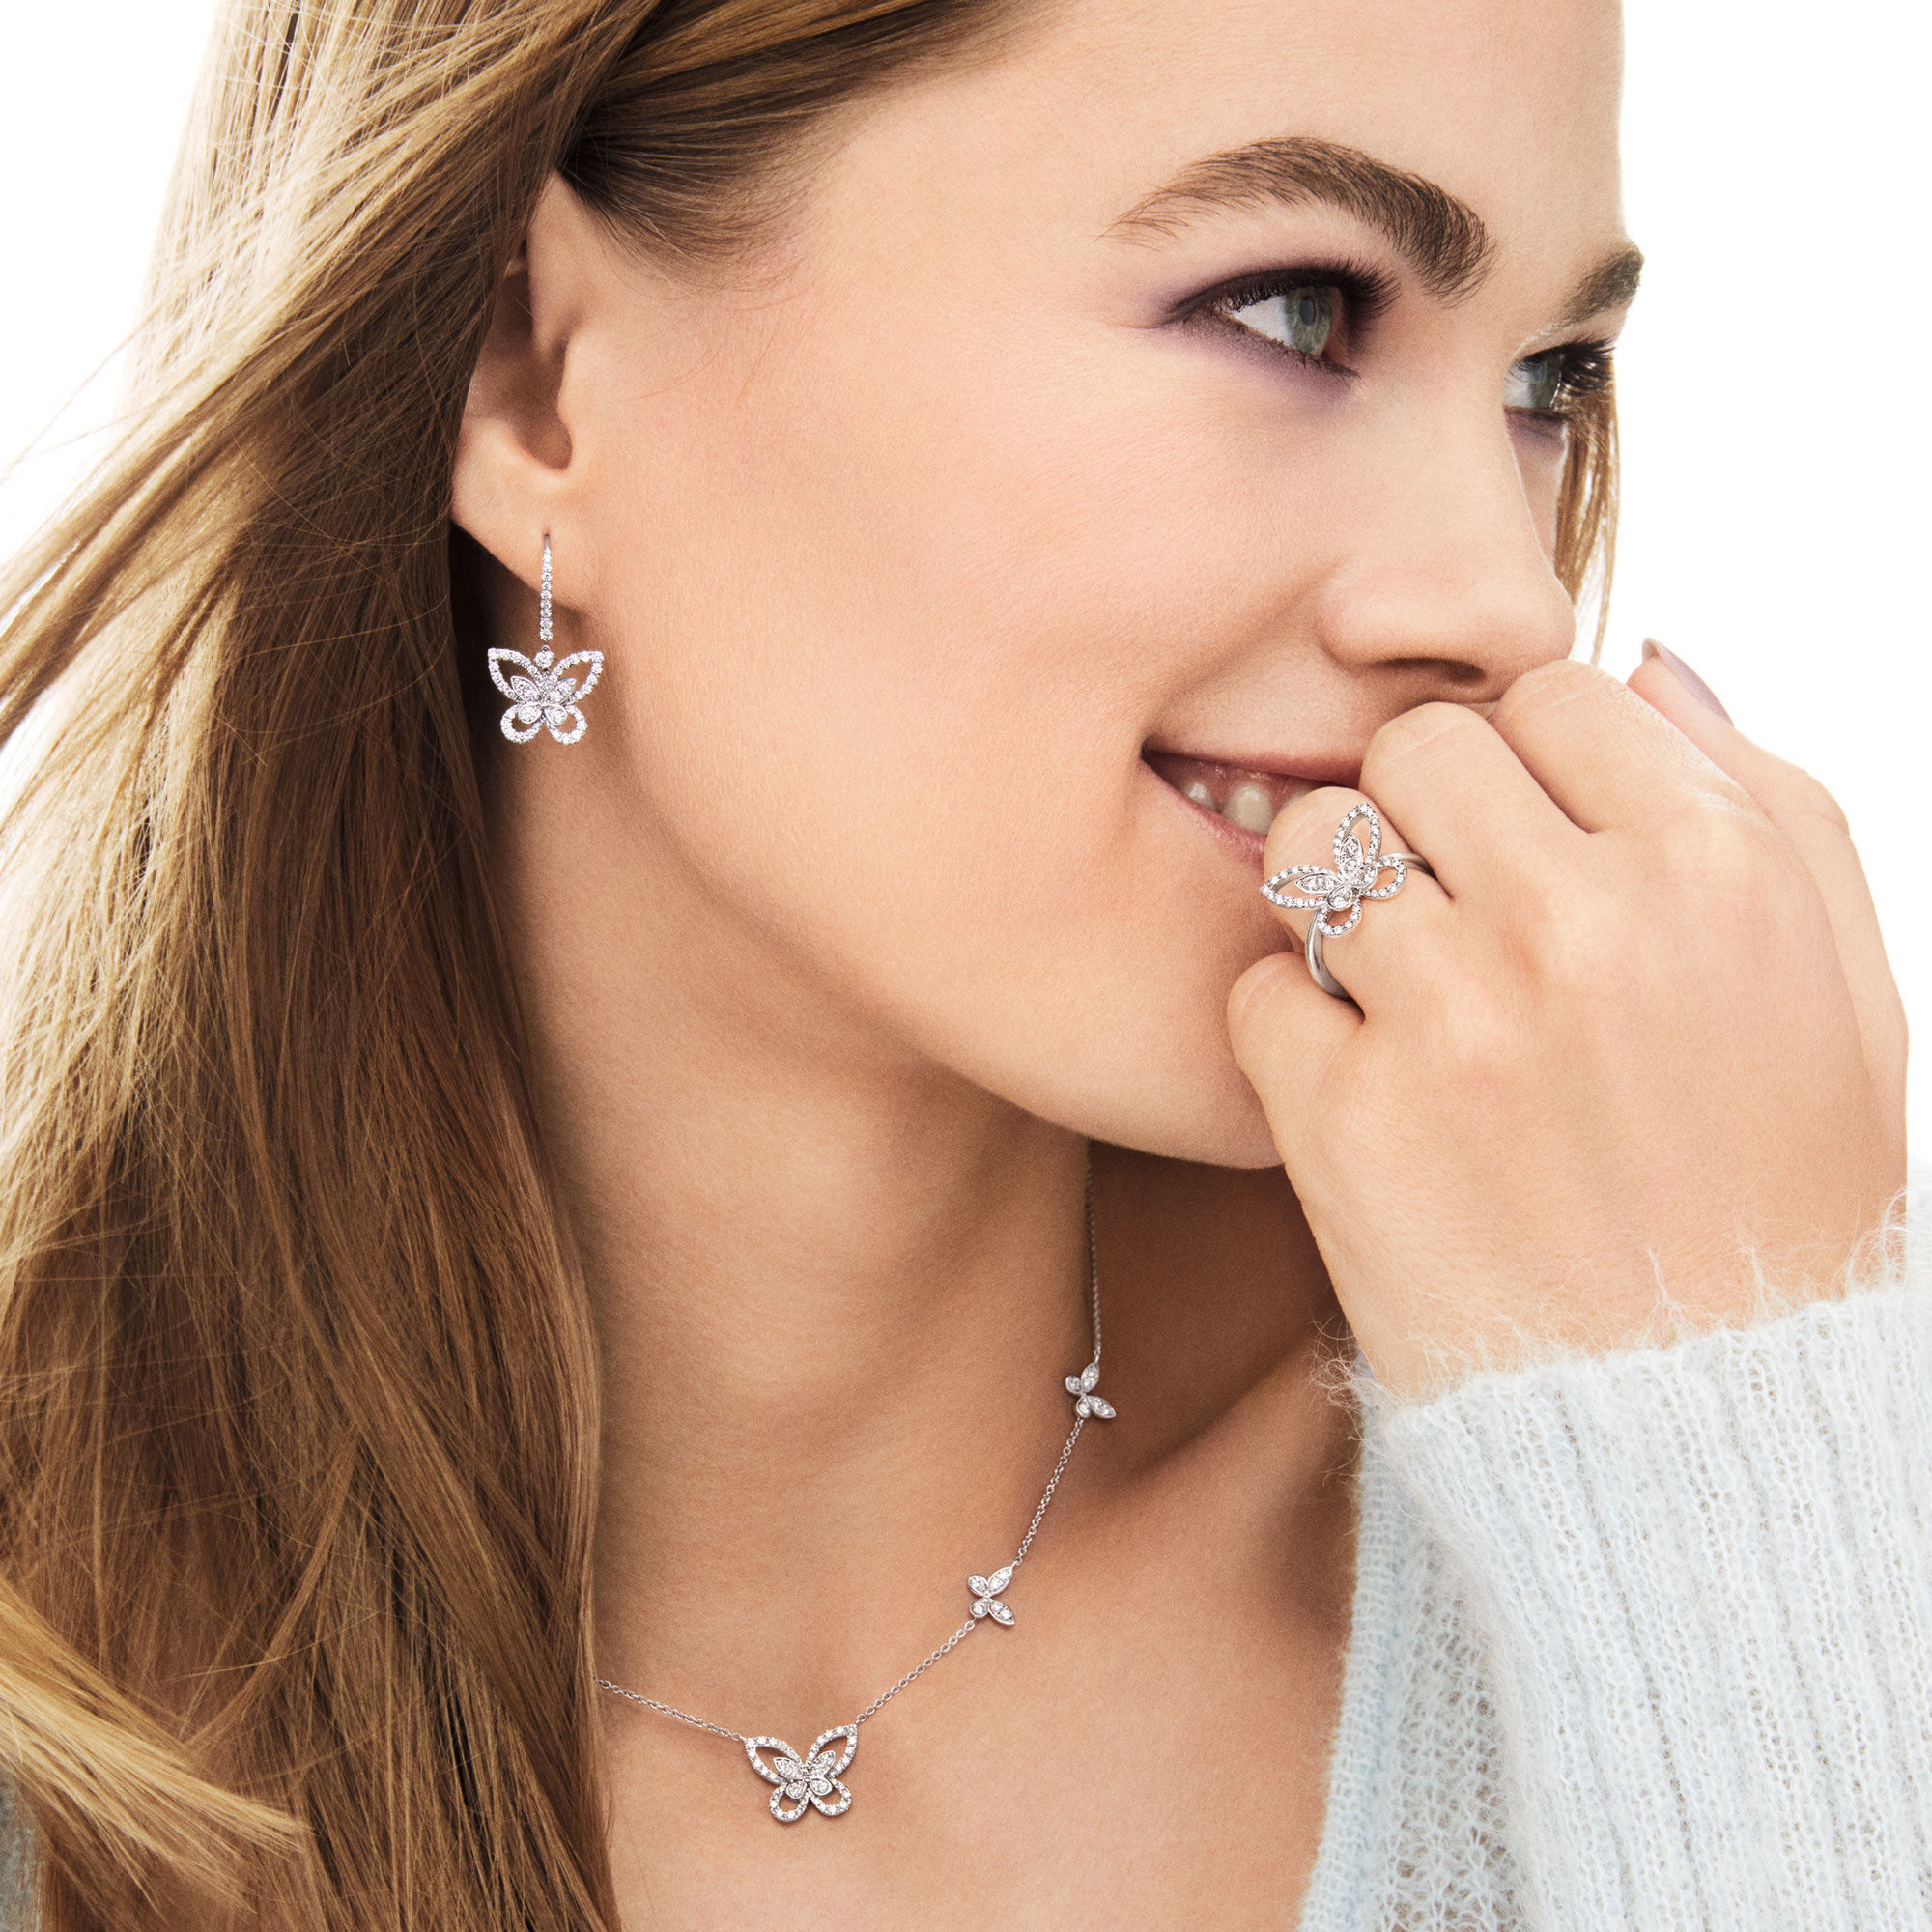 Model wearing earrings, pendant and ring from the Butterfly Silhouette Collection